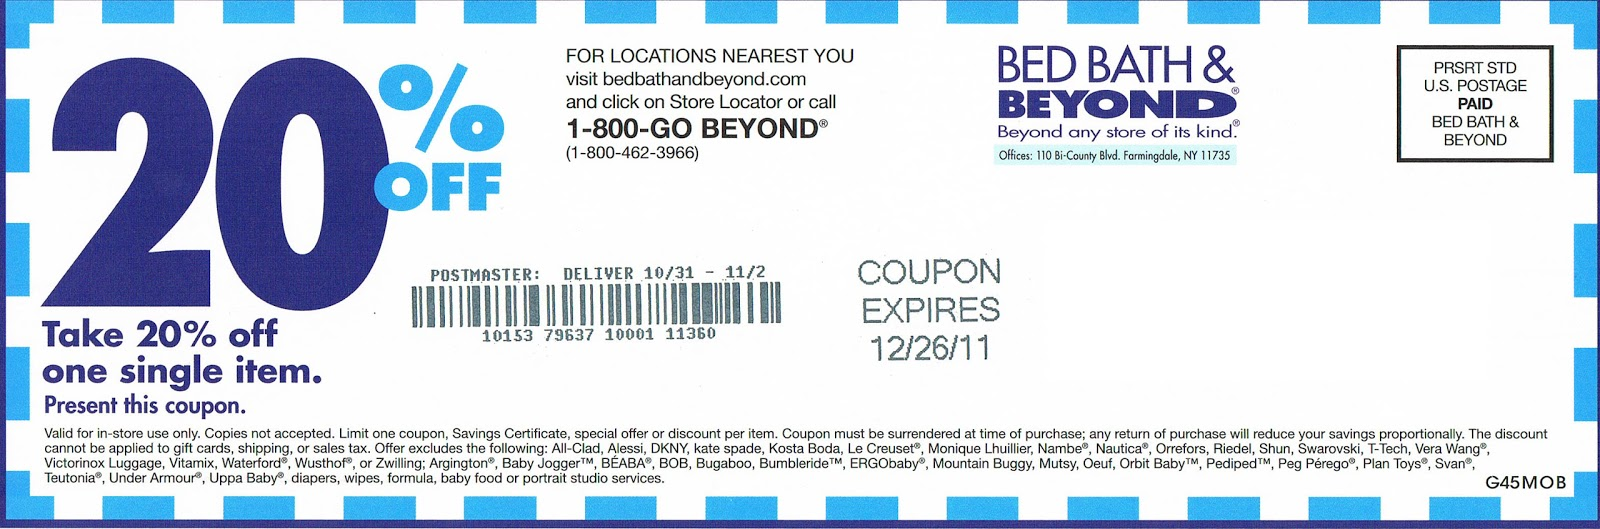 bed bath and beyond coupon 2012 20 at bed bath and beyond 13145